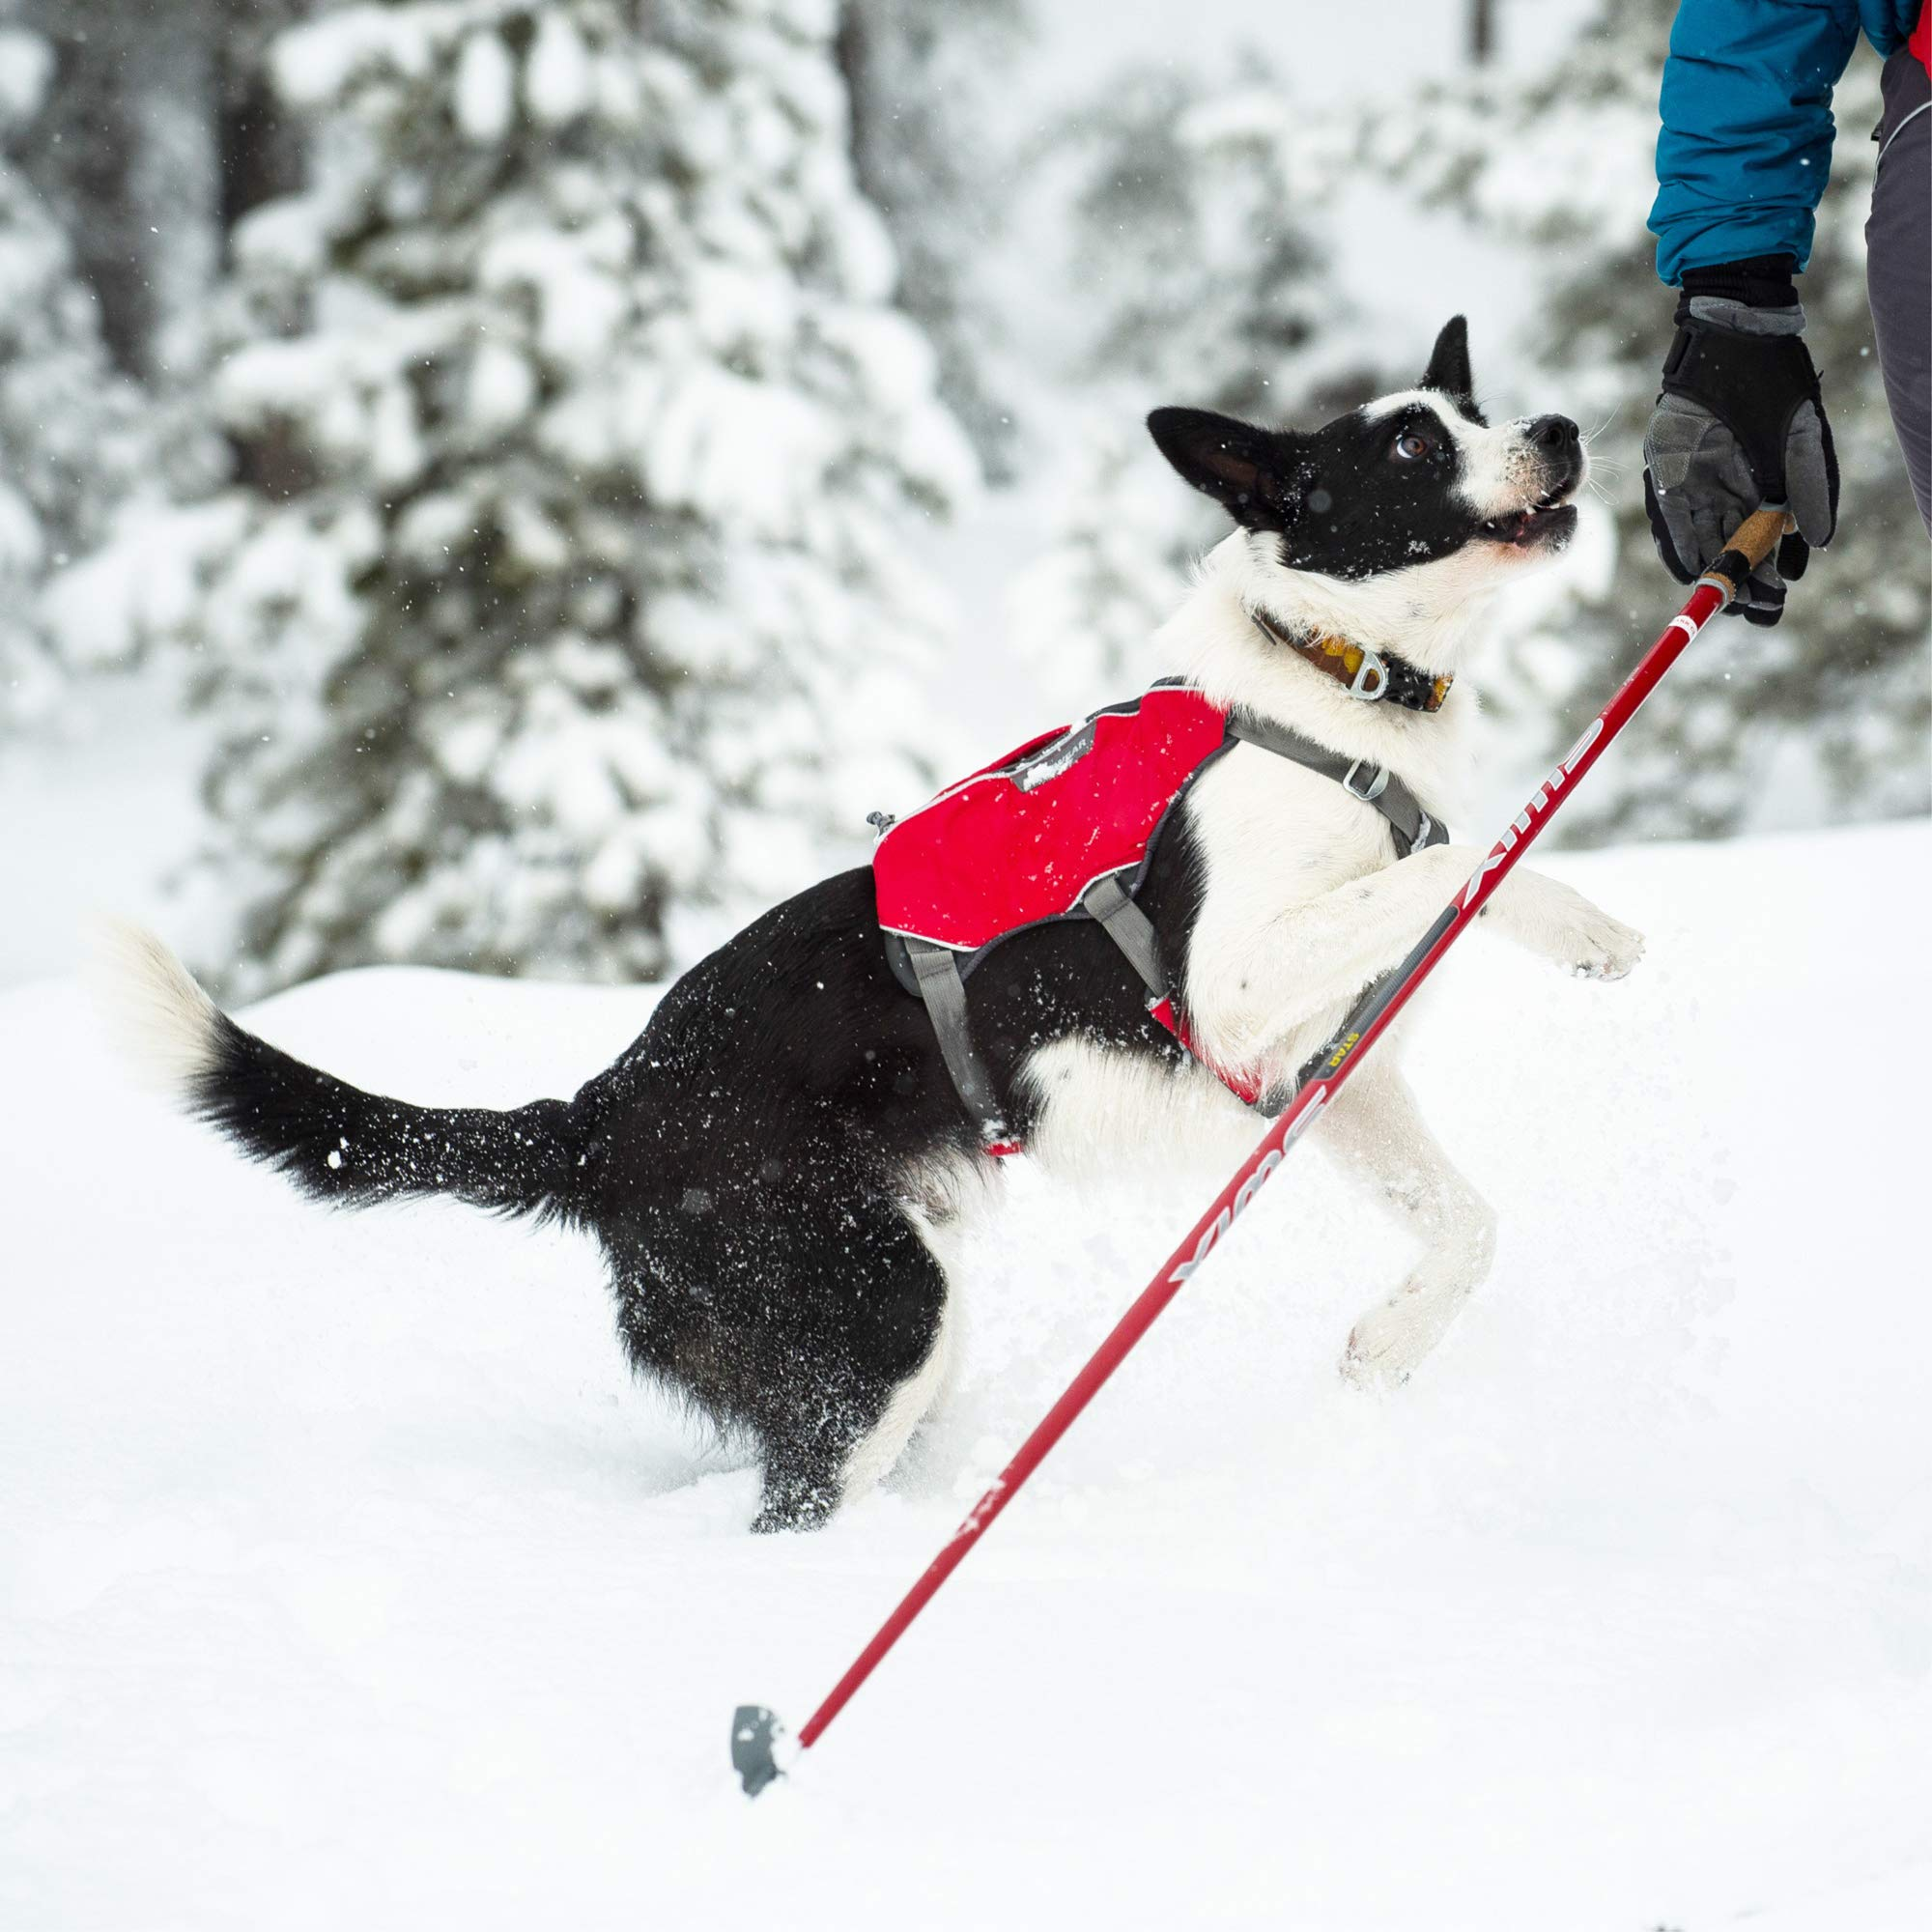 RUFFWEAR - Web Master Pro Dog Harness, Search and Rescue, Service Dogs, Snowboarding, Skiing, Everyday Wear, Red Currant, Small by RUFFWEAR (Image #10)